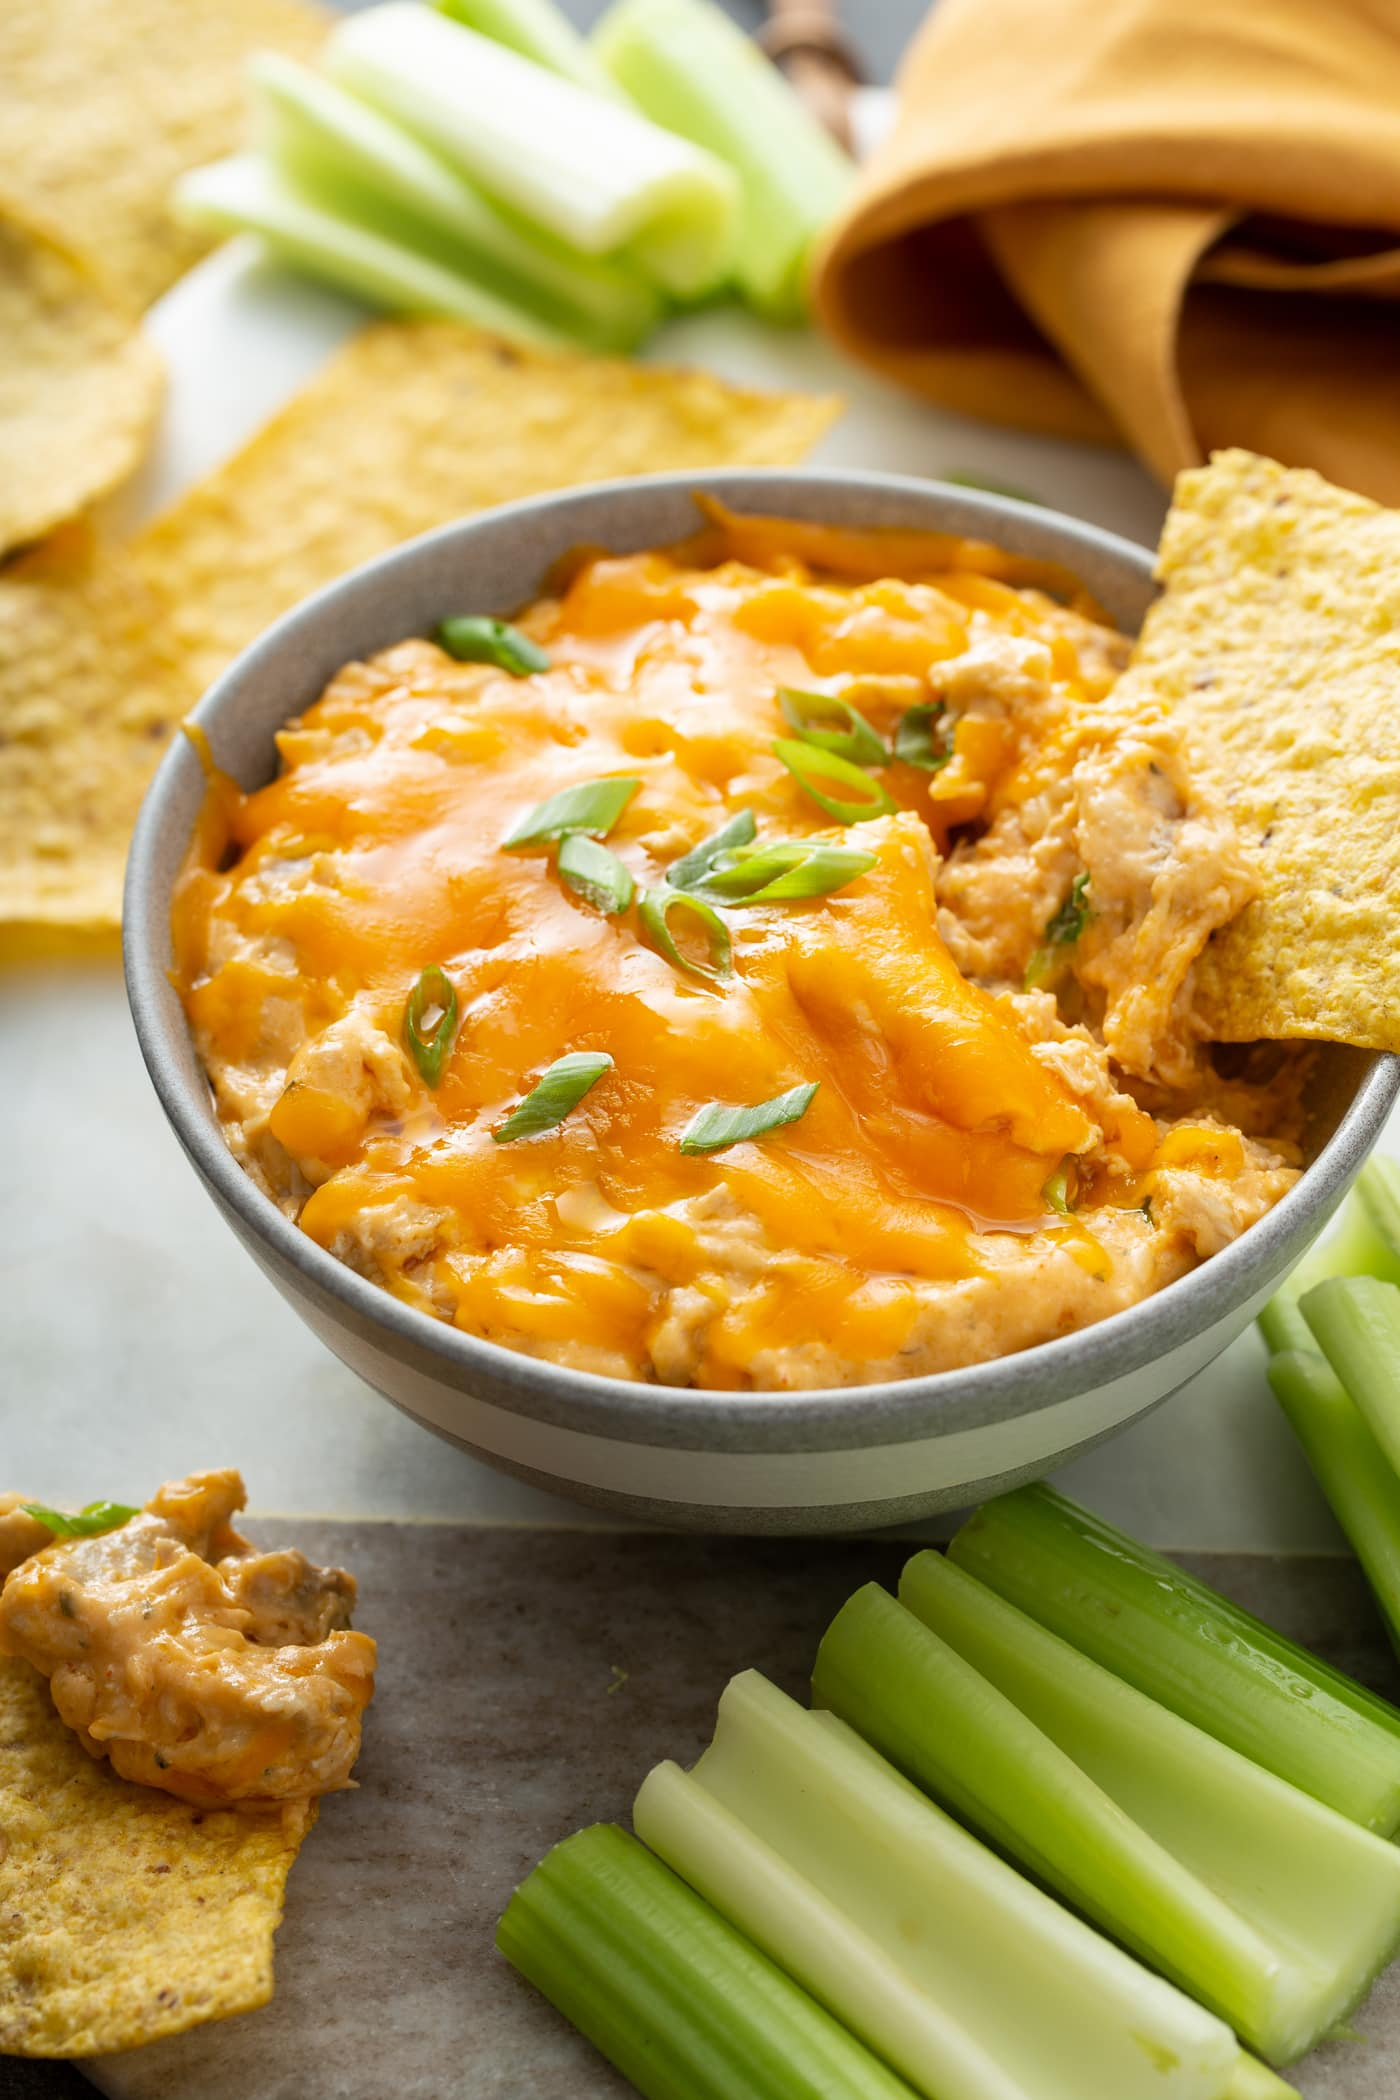 A bowl of buffalo chicken dip topped with melted cheese and chopped green onions. A chip is being dipped into it. There are chips and celery sticks surrounding the bowl of dip.